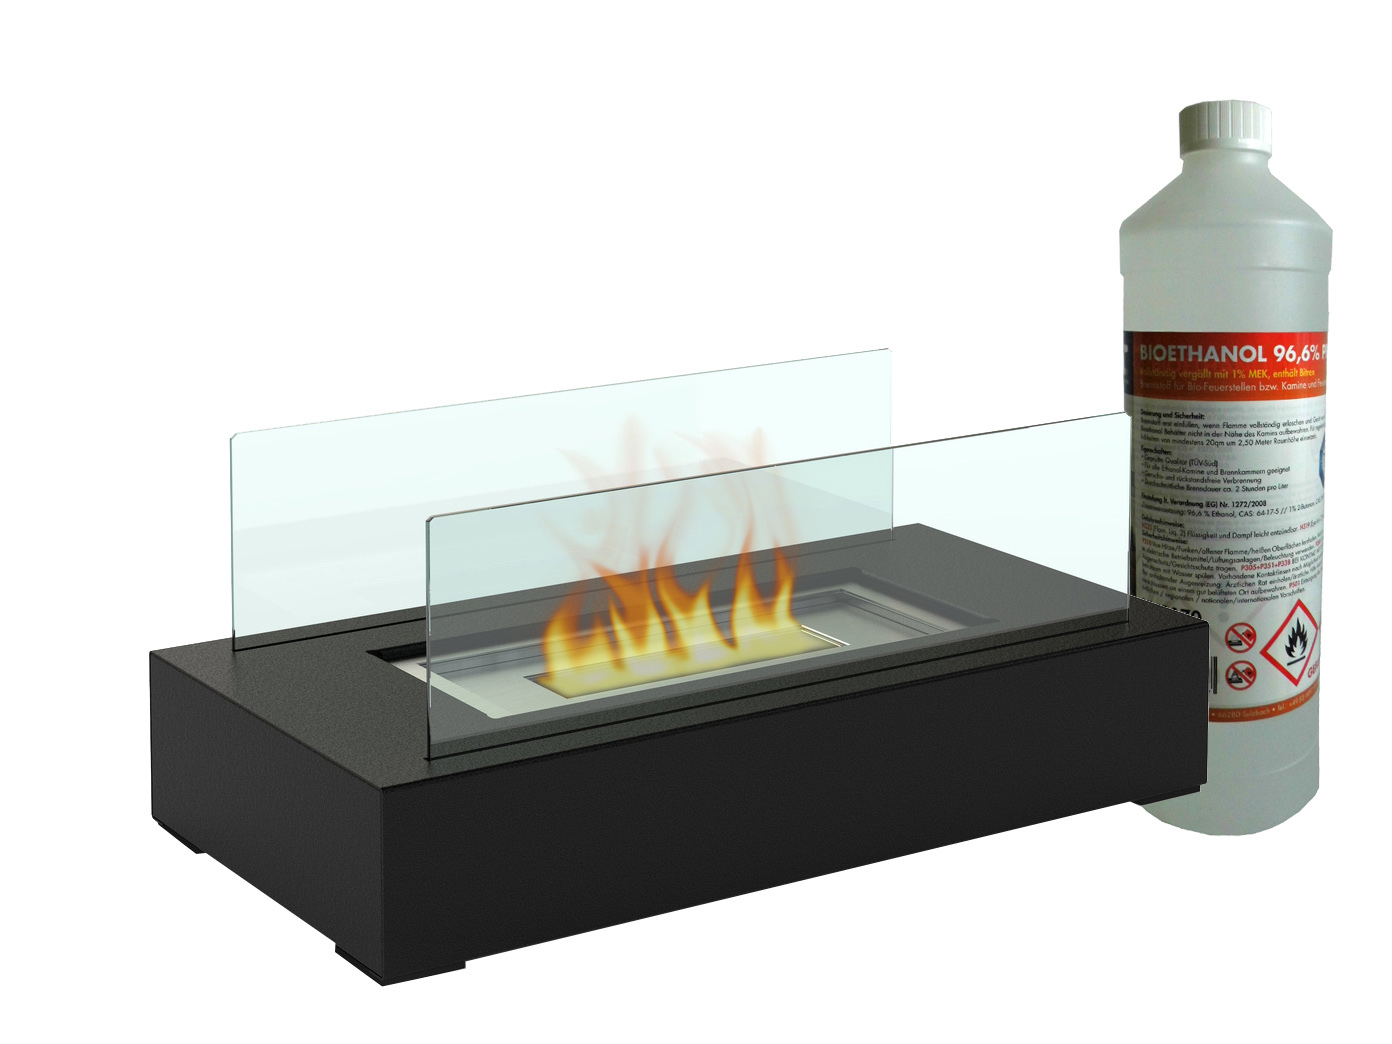 tischkamin mit 1liter bio ethanol tischfeuer glaskamin. Black Bedroom Furniture Sets. Home Design Ideas